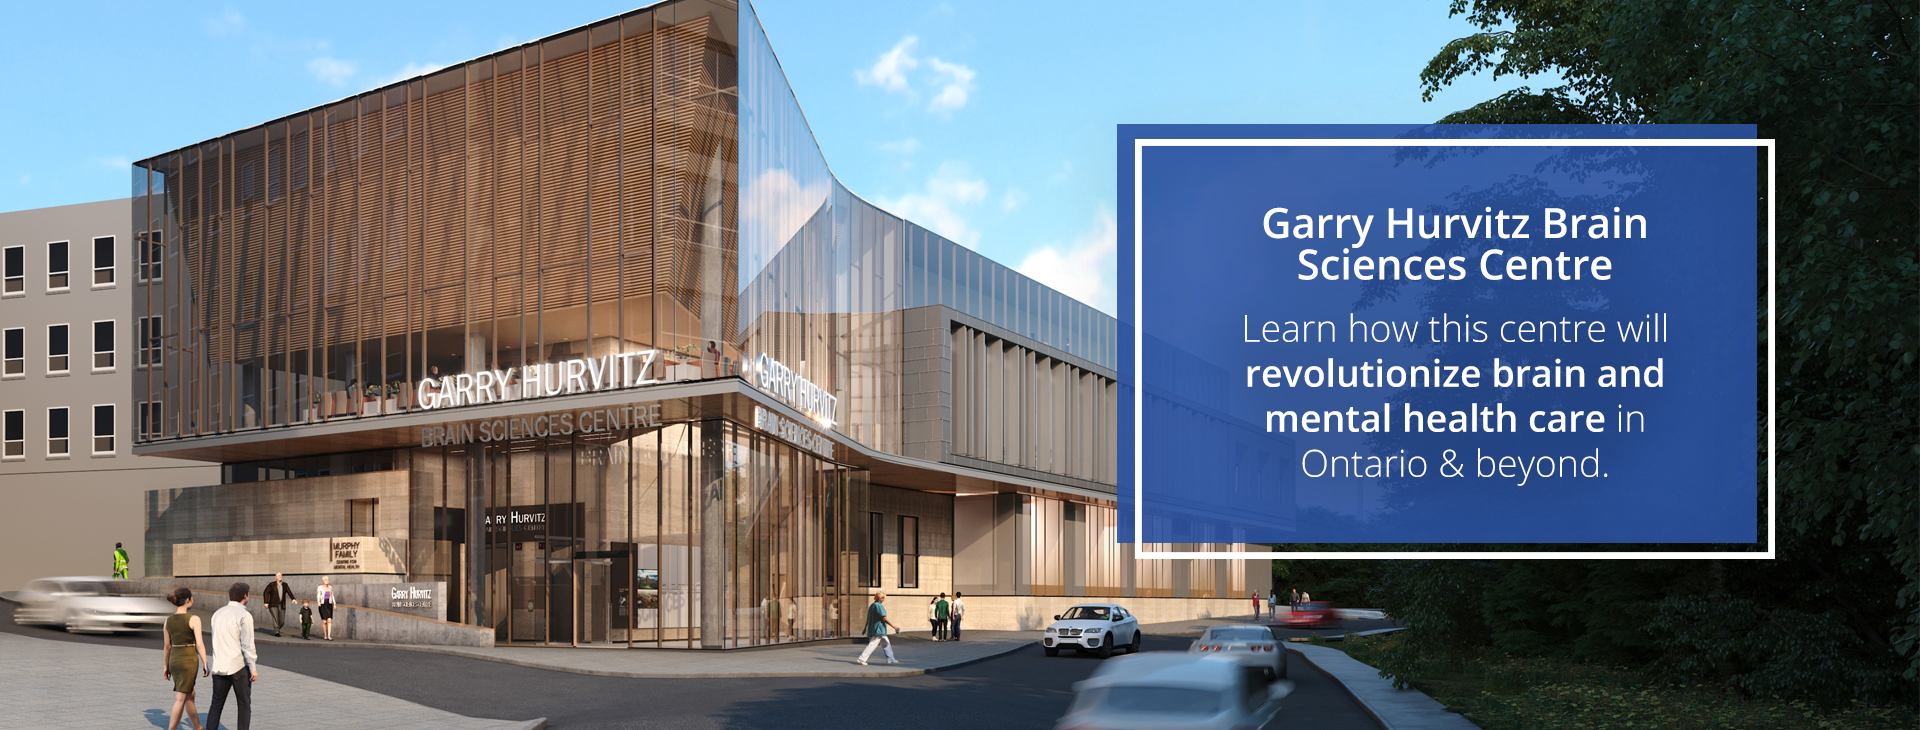 Learn how the Garry Hurvitz Brain Sciences Centre will revolutionize brain and mental health care in Ontario and beyond